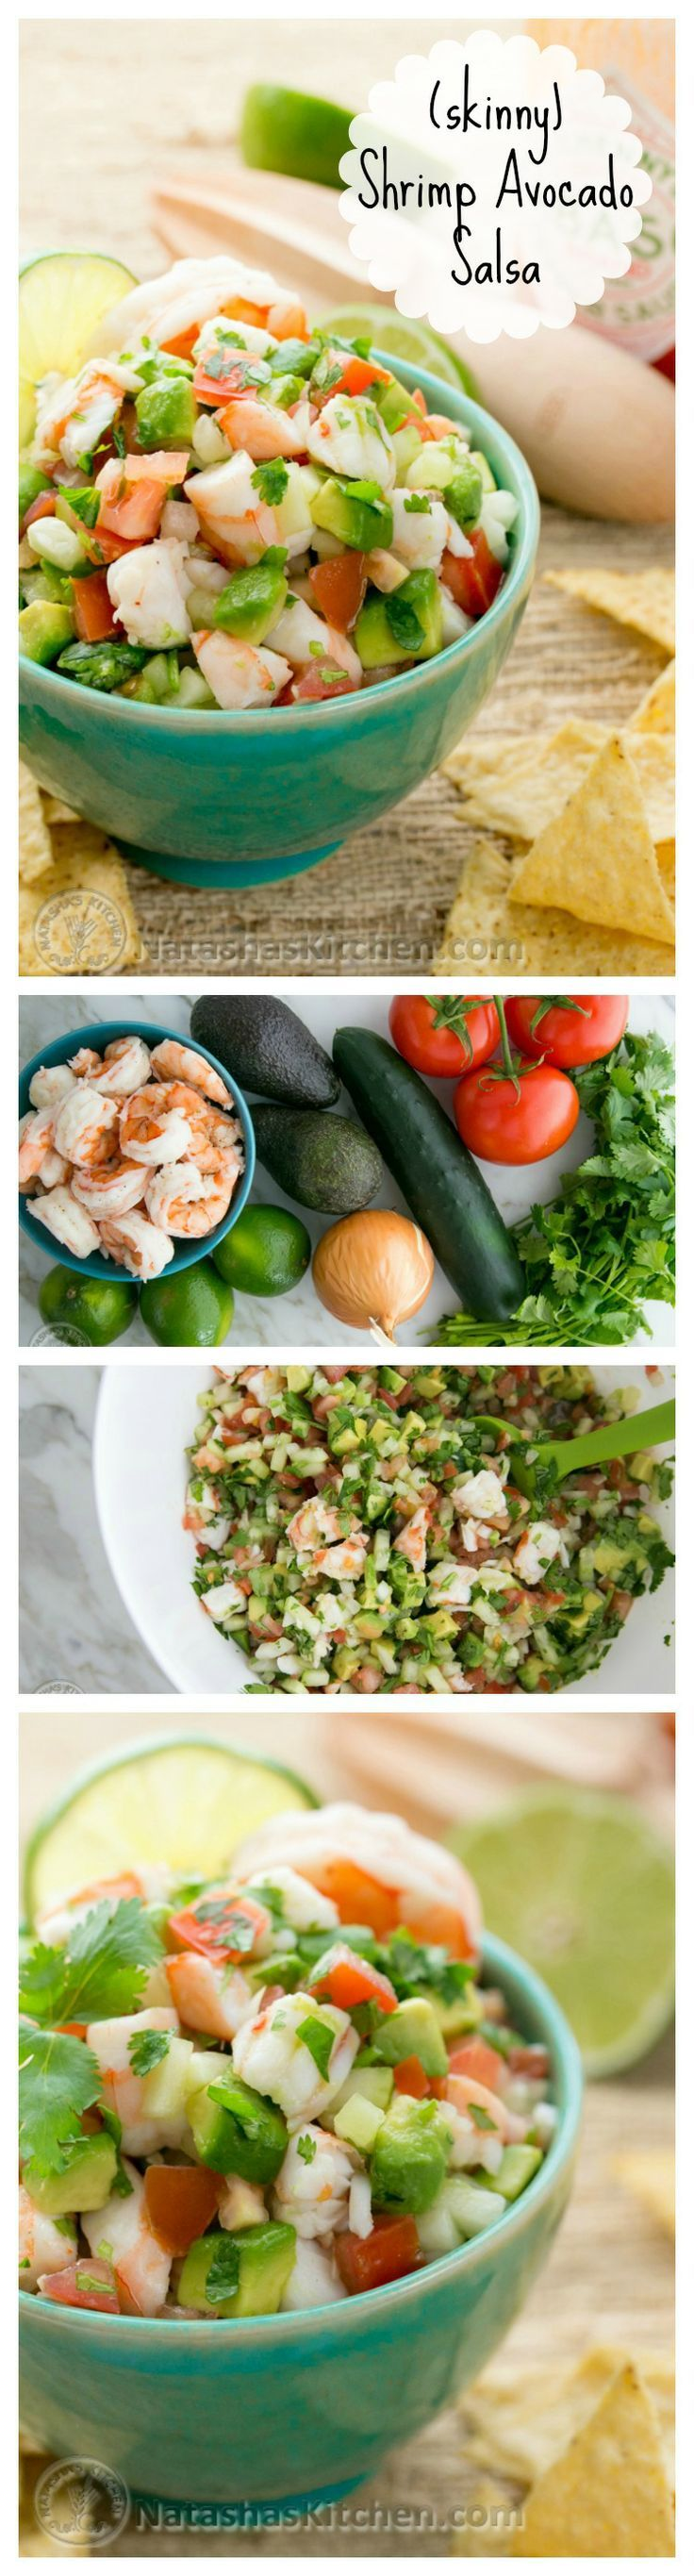 Favorite salsa! We love this shrimp salsa with tabasco sauce. This shrimp…